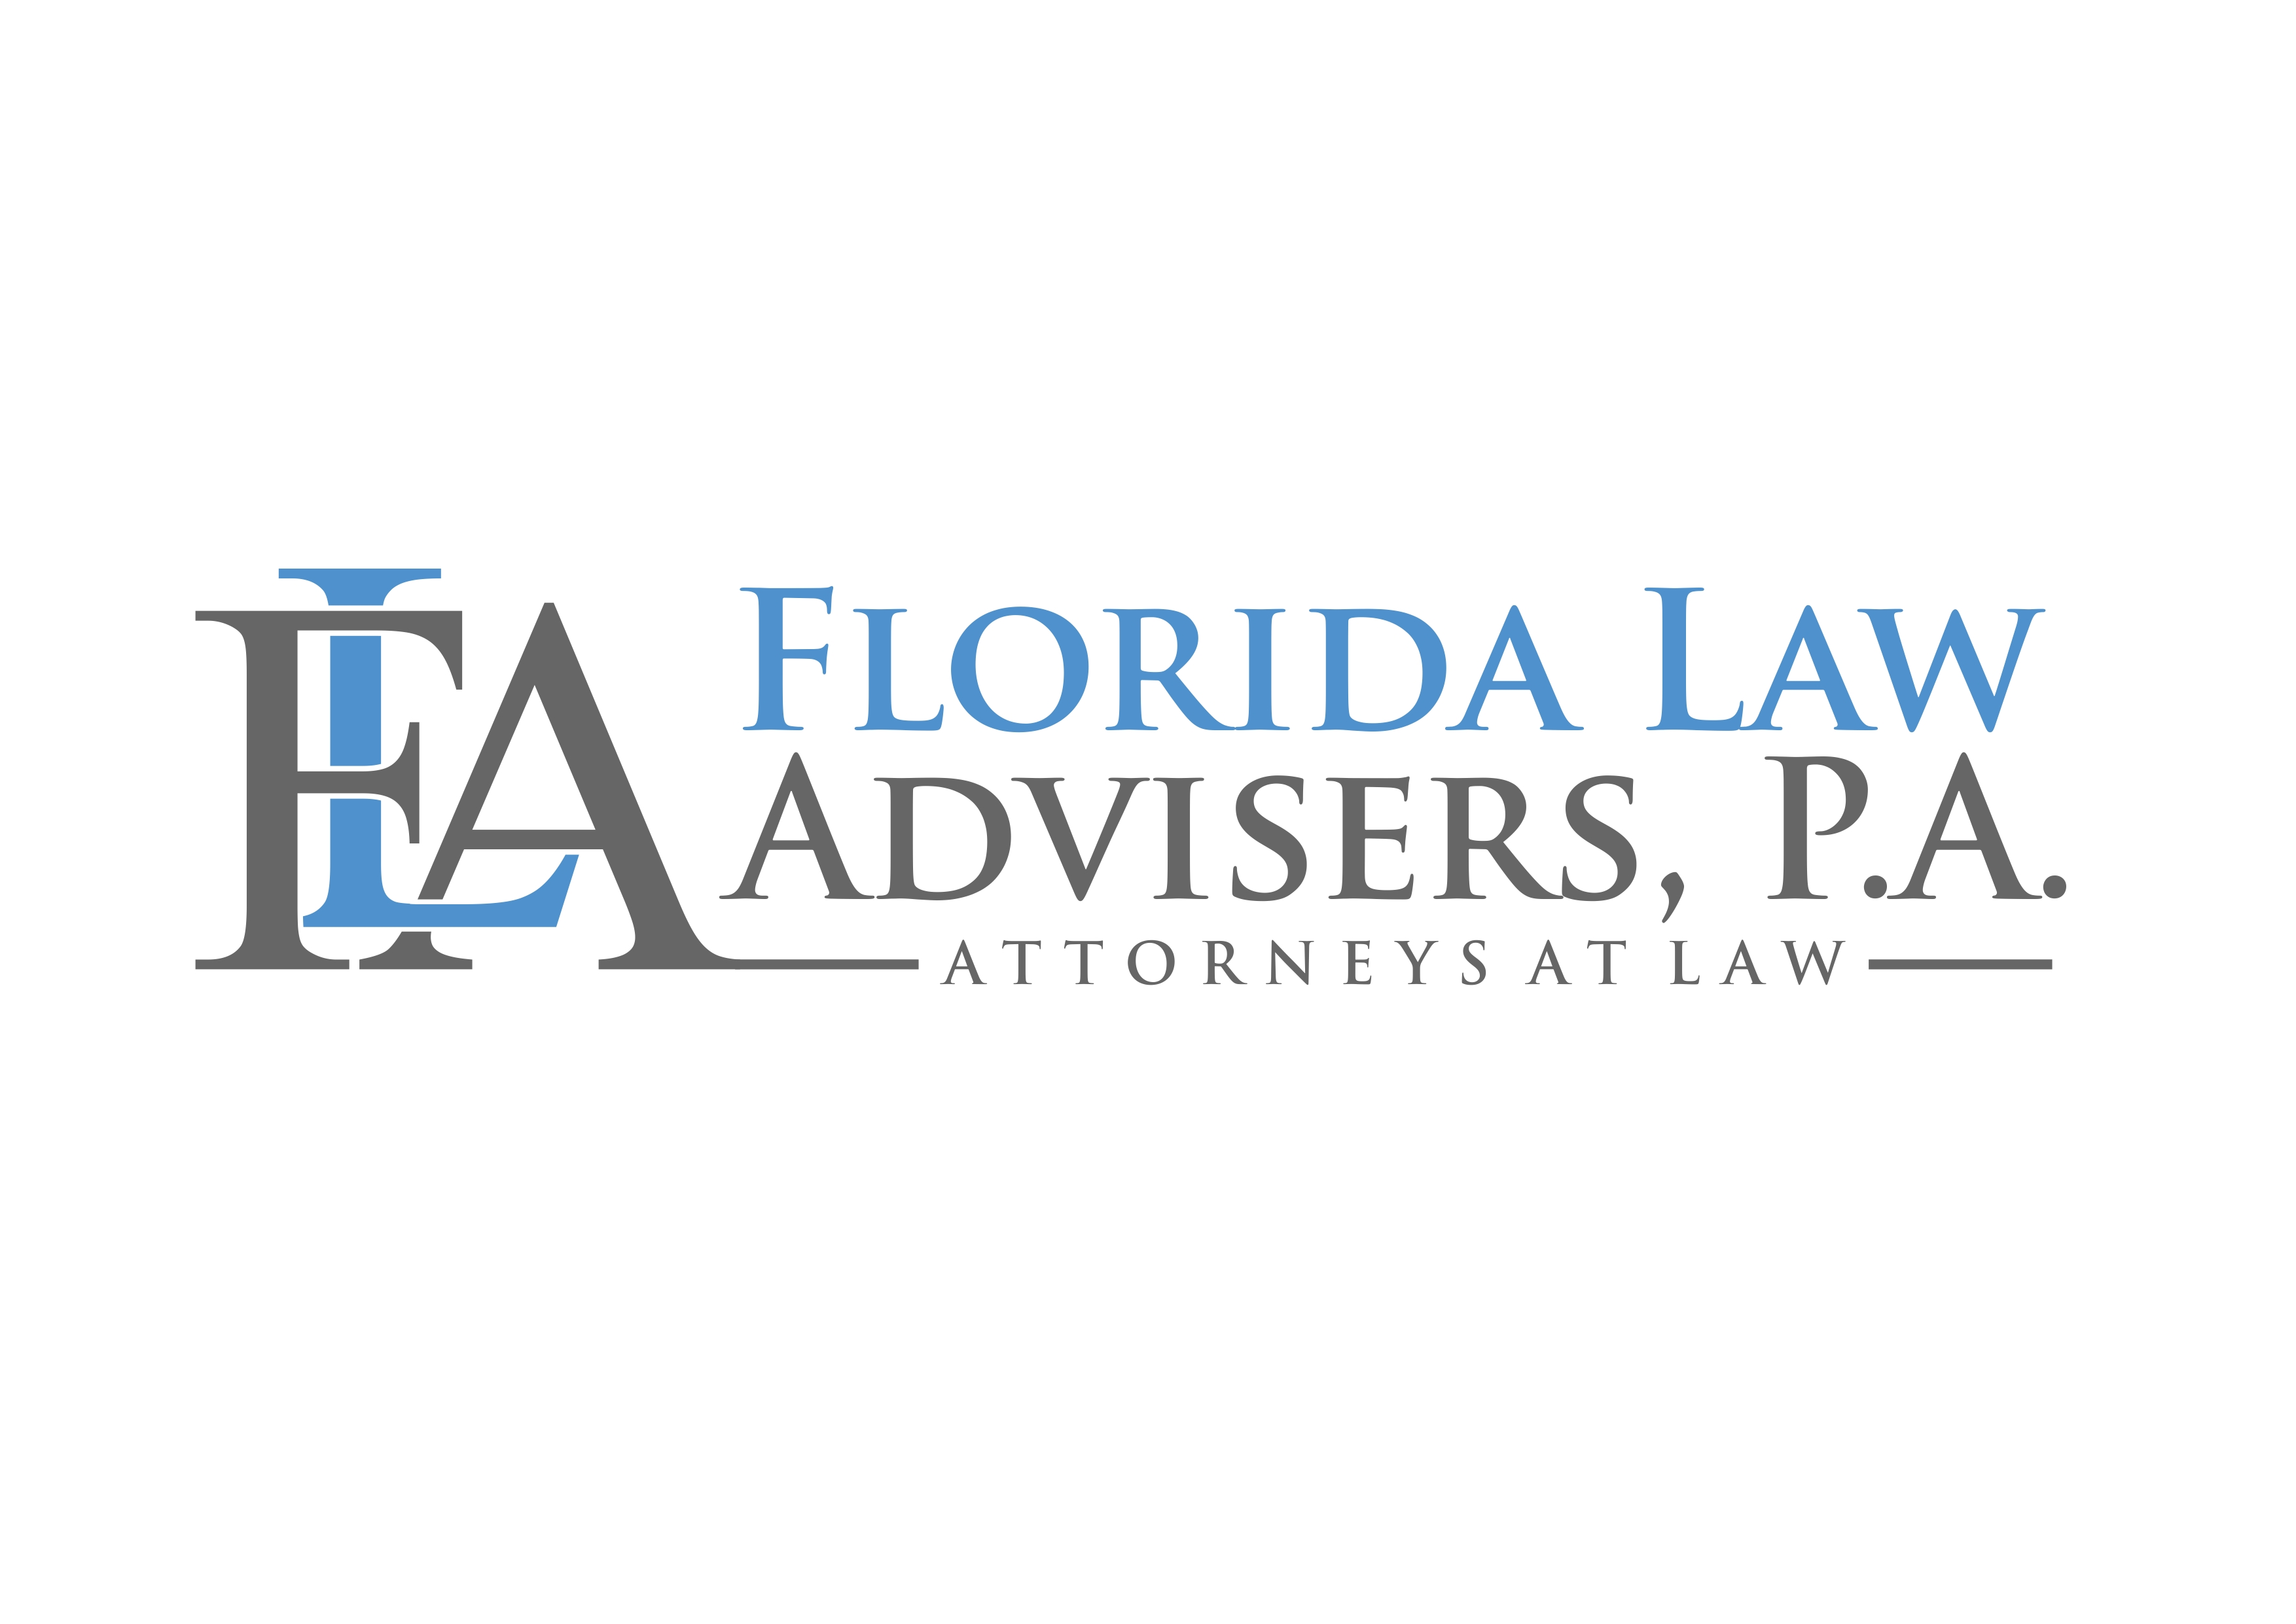 Florida Law Advisers, P.A.